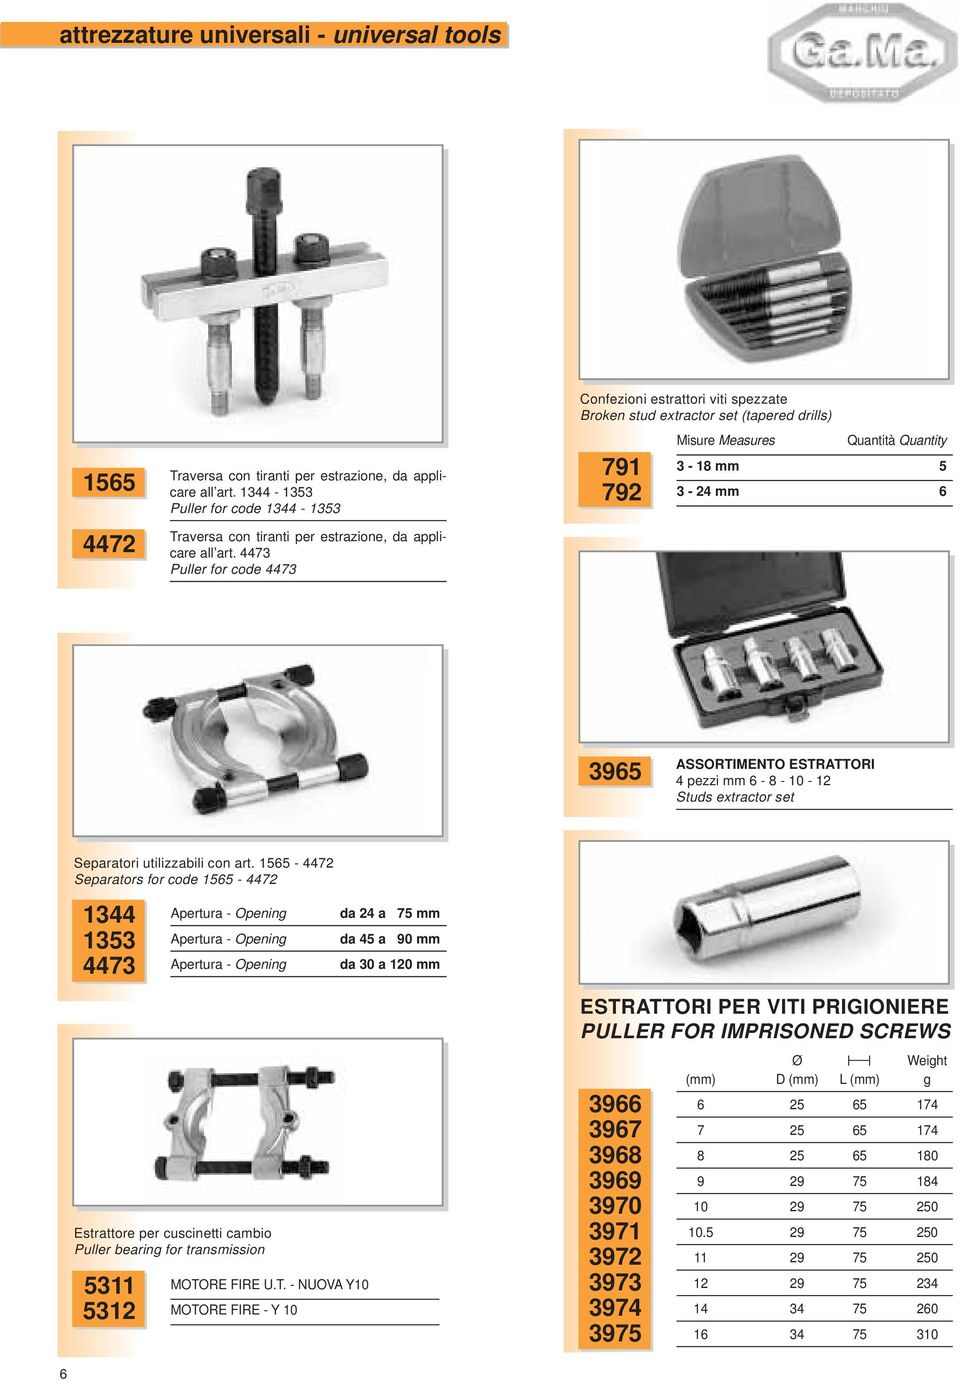 4473 Puller for code 4473 Confezioni estrattori viti spezzate Broken stud extractor set (tapered drills) 791 792 Misure Measures Quantità Quantity 3-18 mm 5 3-24 mm 6 3965 ASSORTIMENTO ESTRATTORI 4